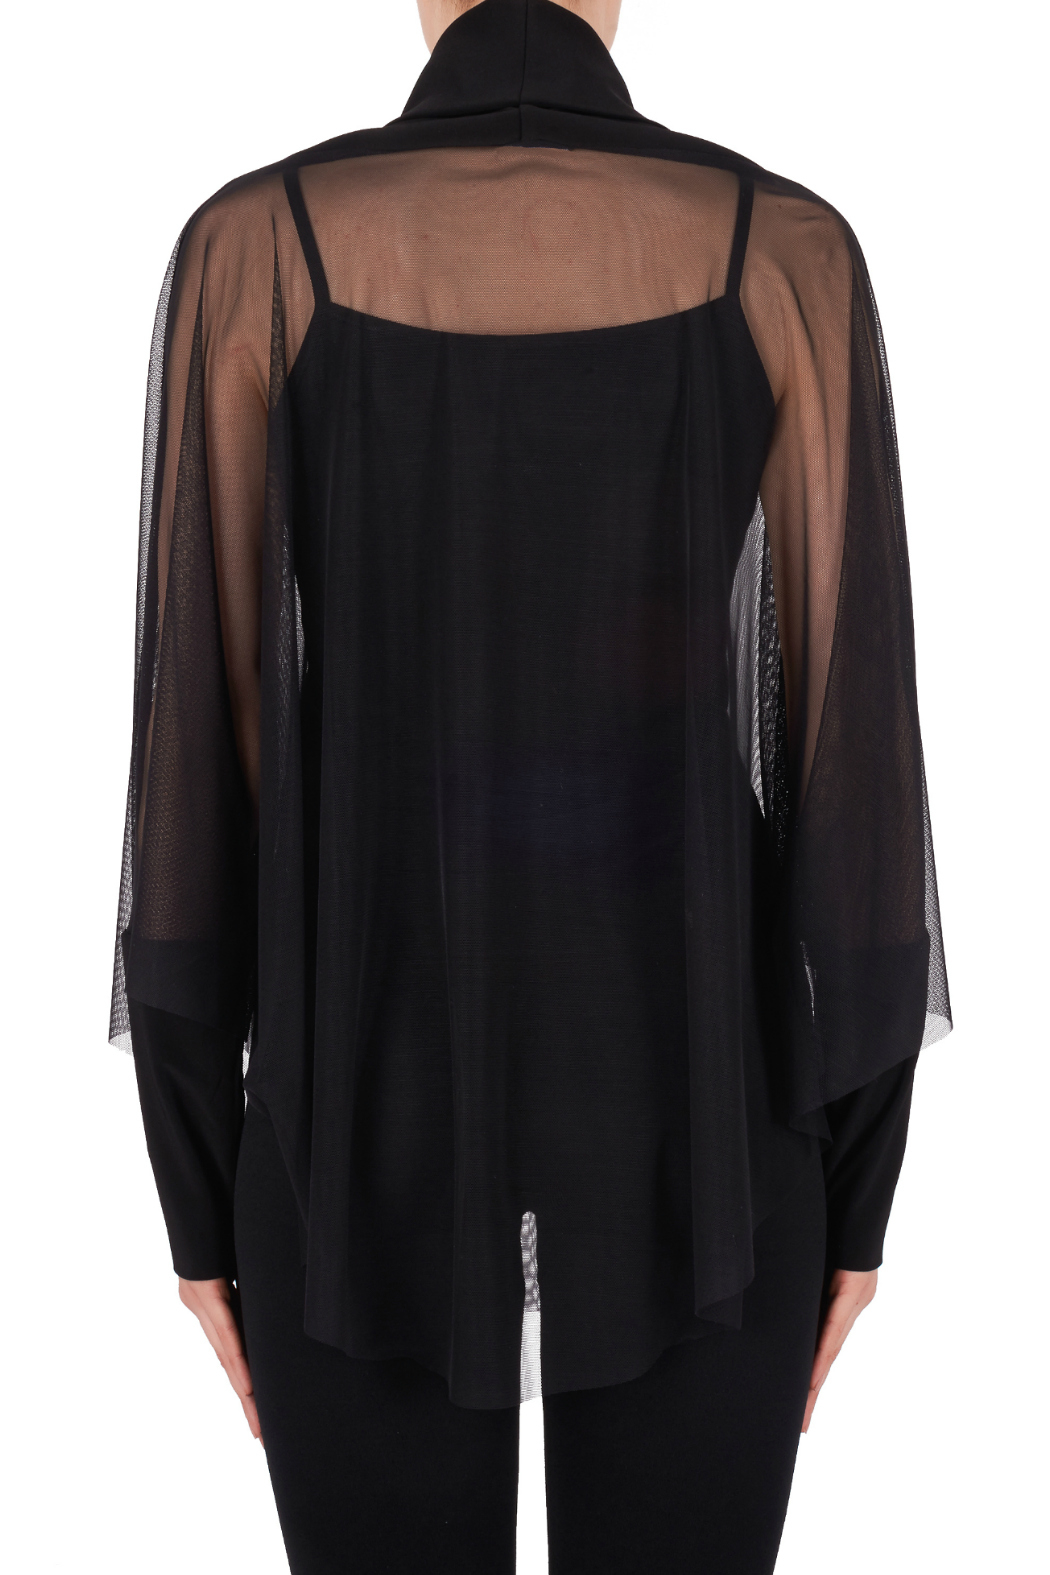 Joseph Ribkoff USA Inc. Sheer Mock-neck Batwing w Cami underlay - Back Cropped Image